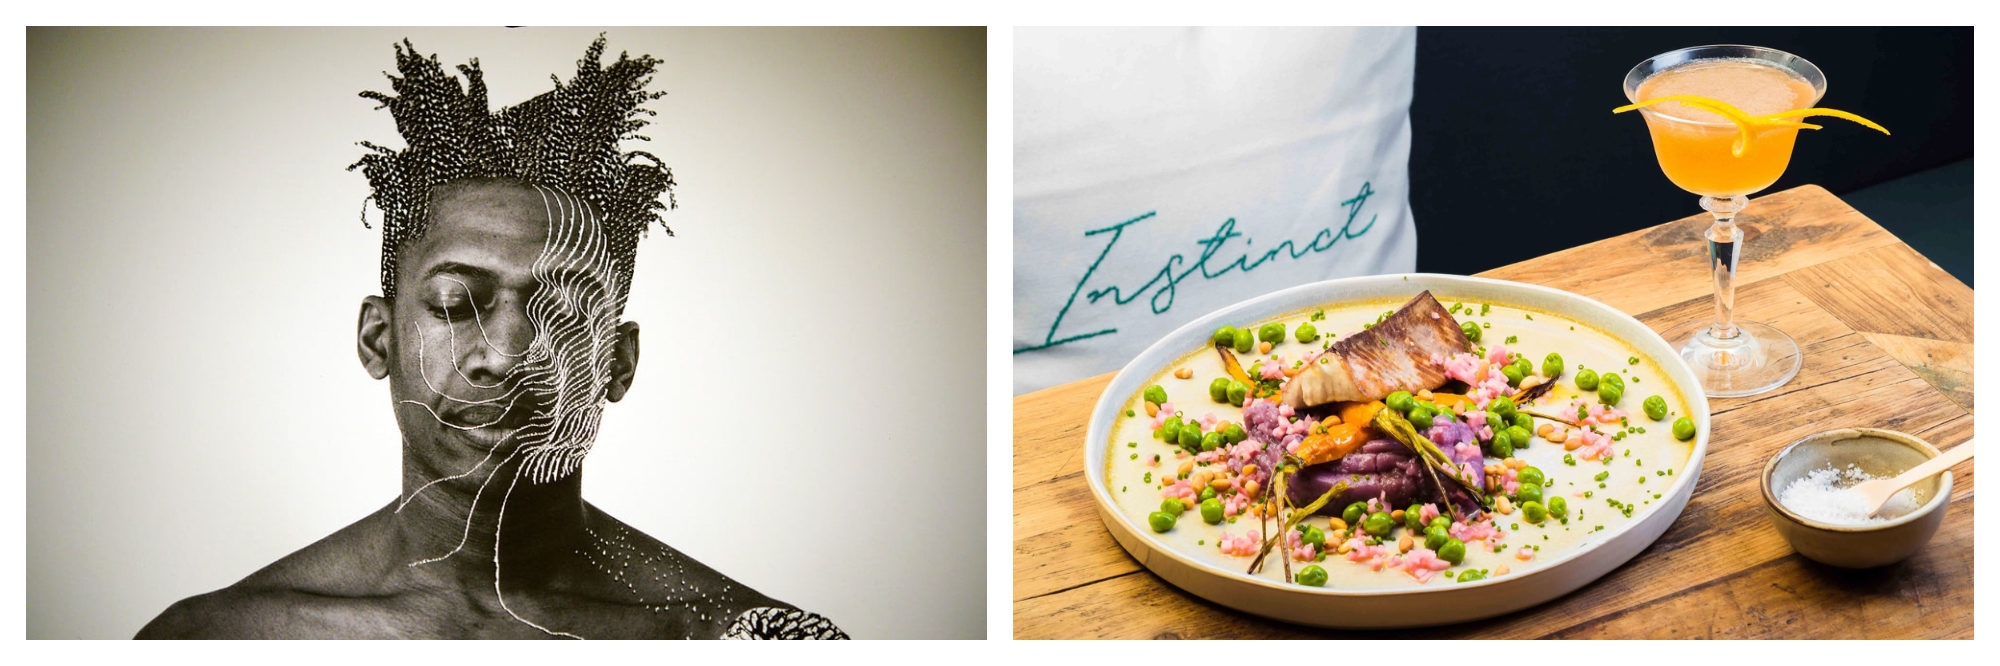 A black and white photo of a black man with his a spider's web drawn in top from Paris Photo event (left). A plate of food at the Paris Cocktail Festival (right).